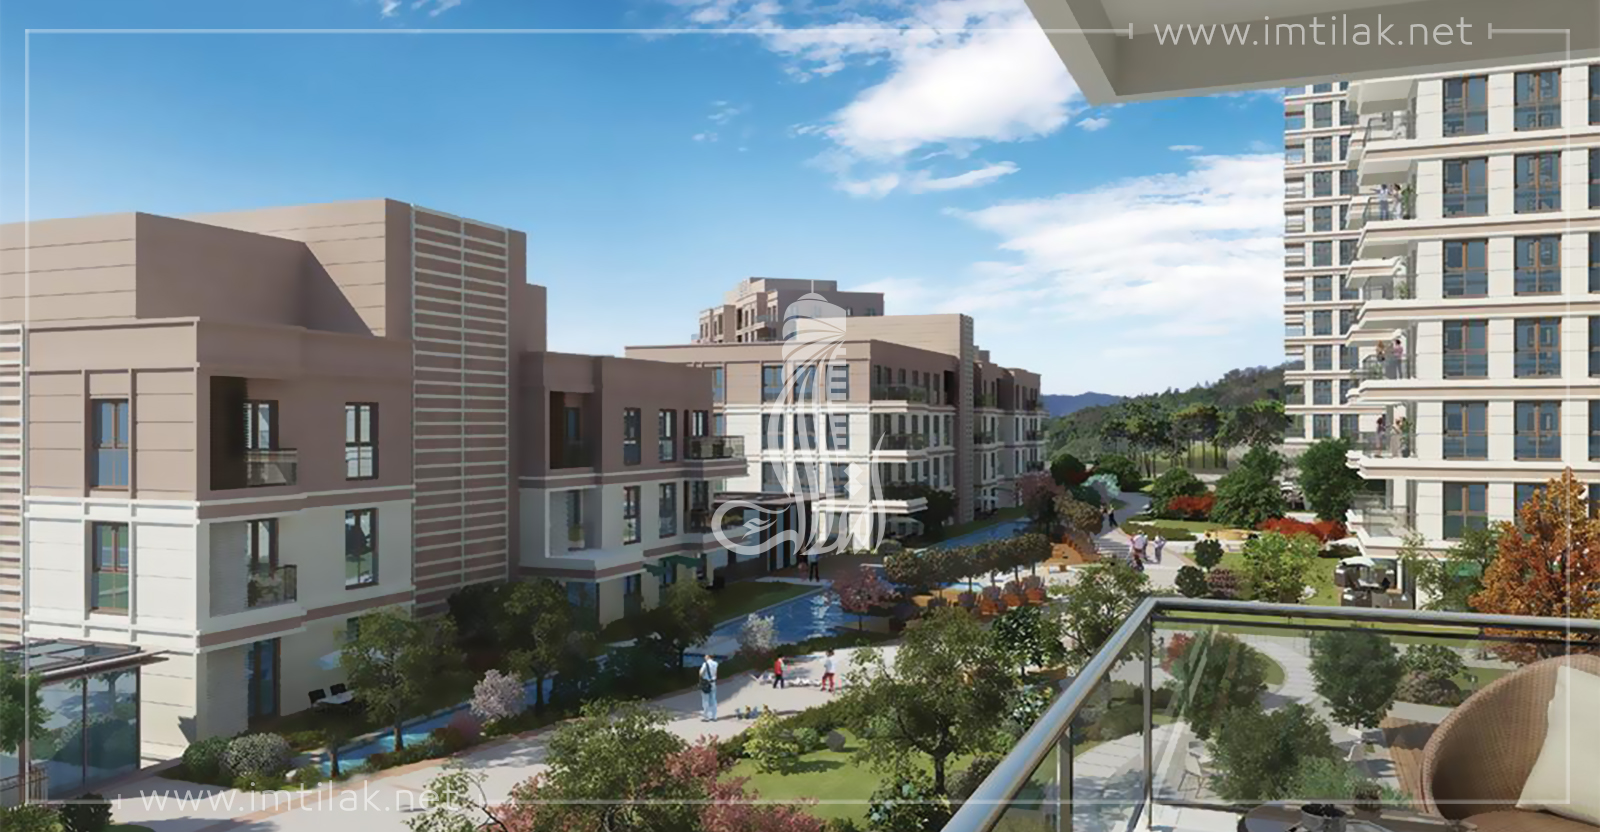 Homes In Turkey For Sale - Relax Residence IMT - 237